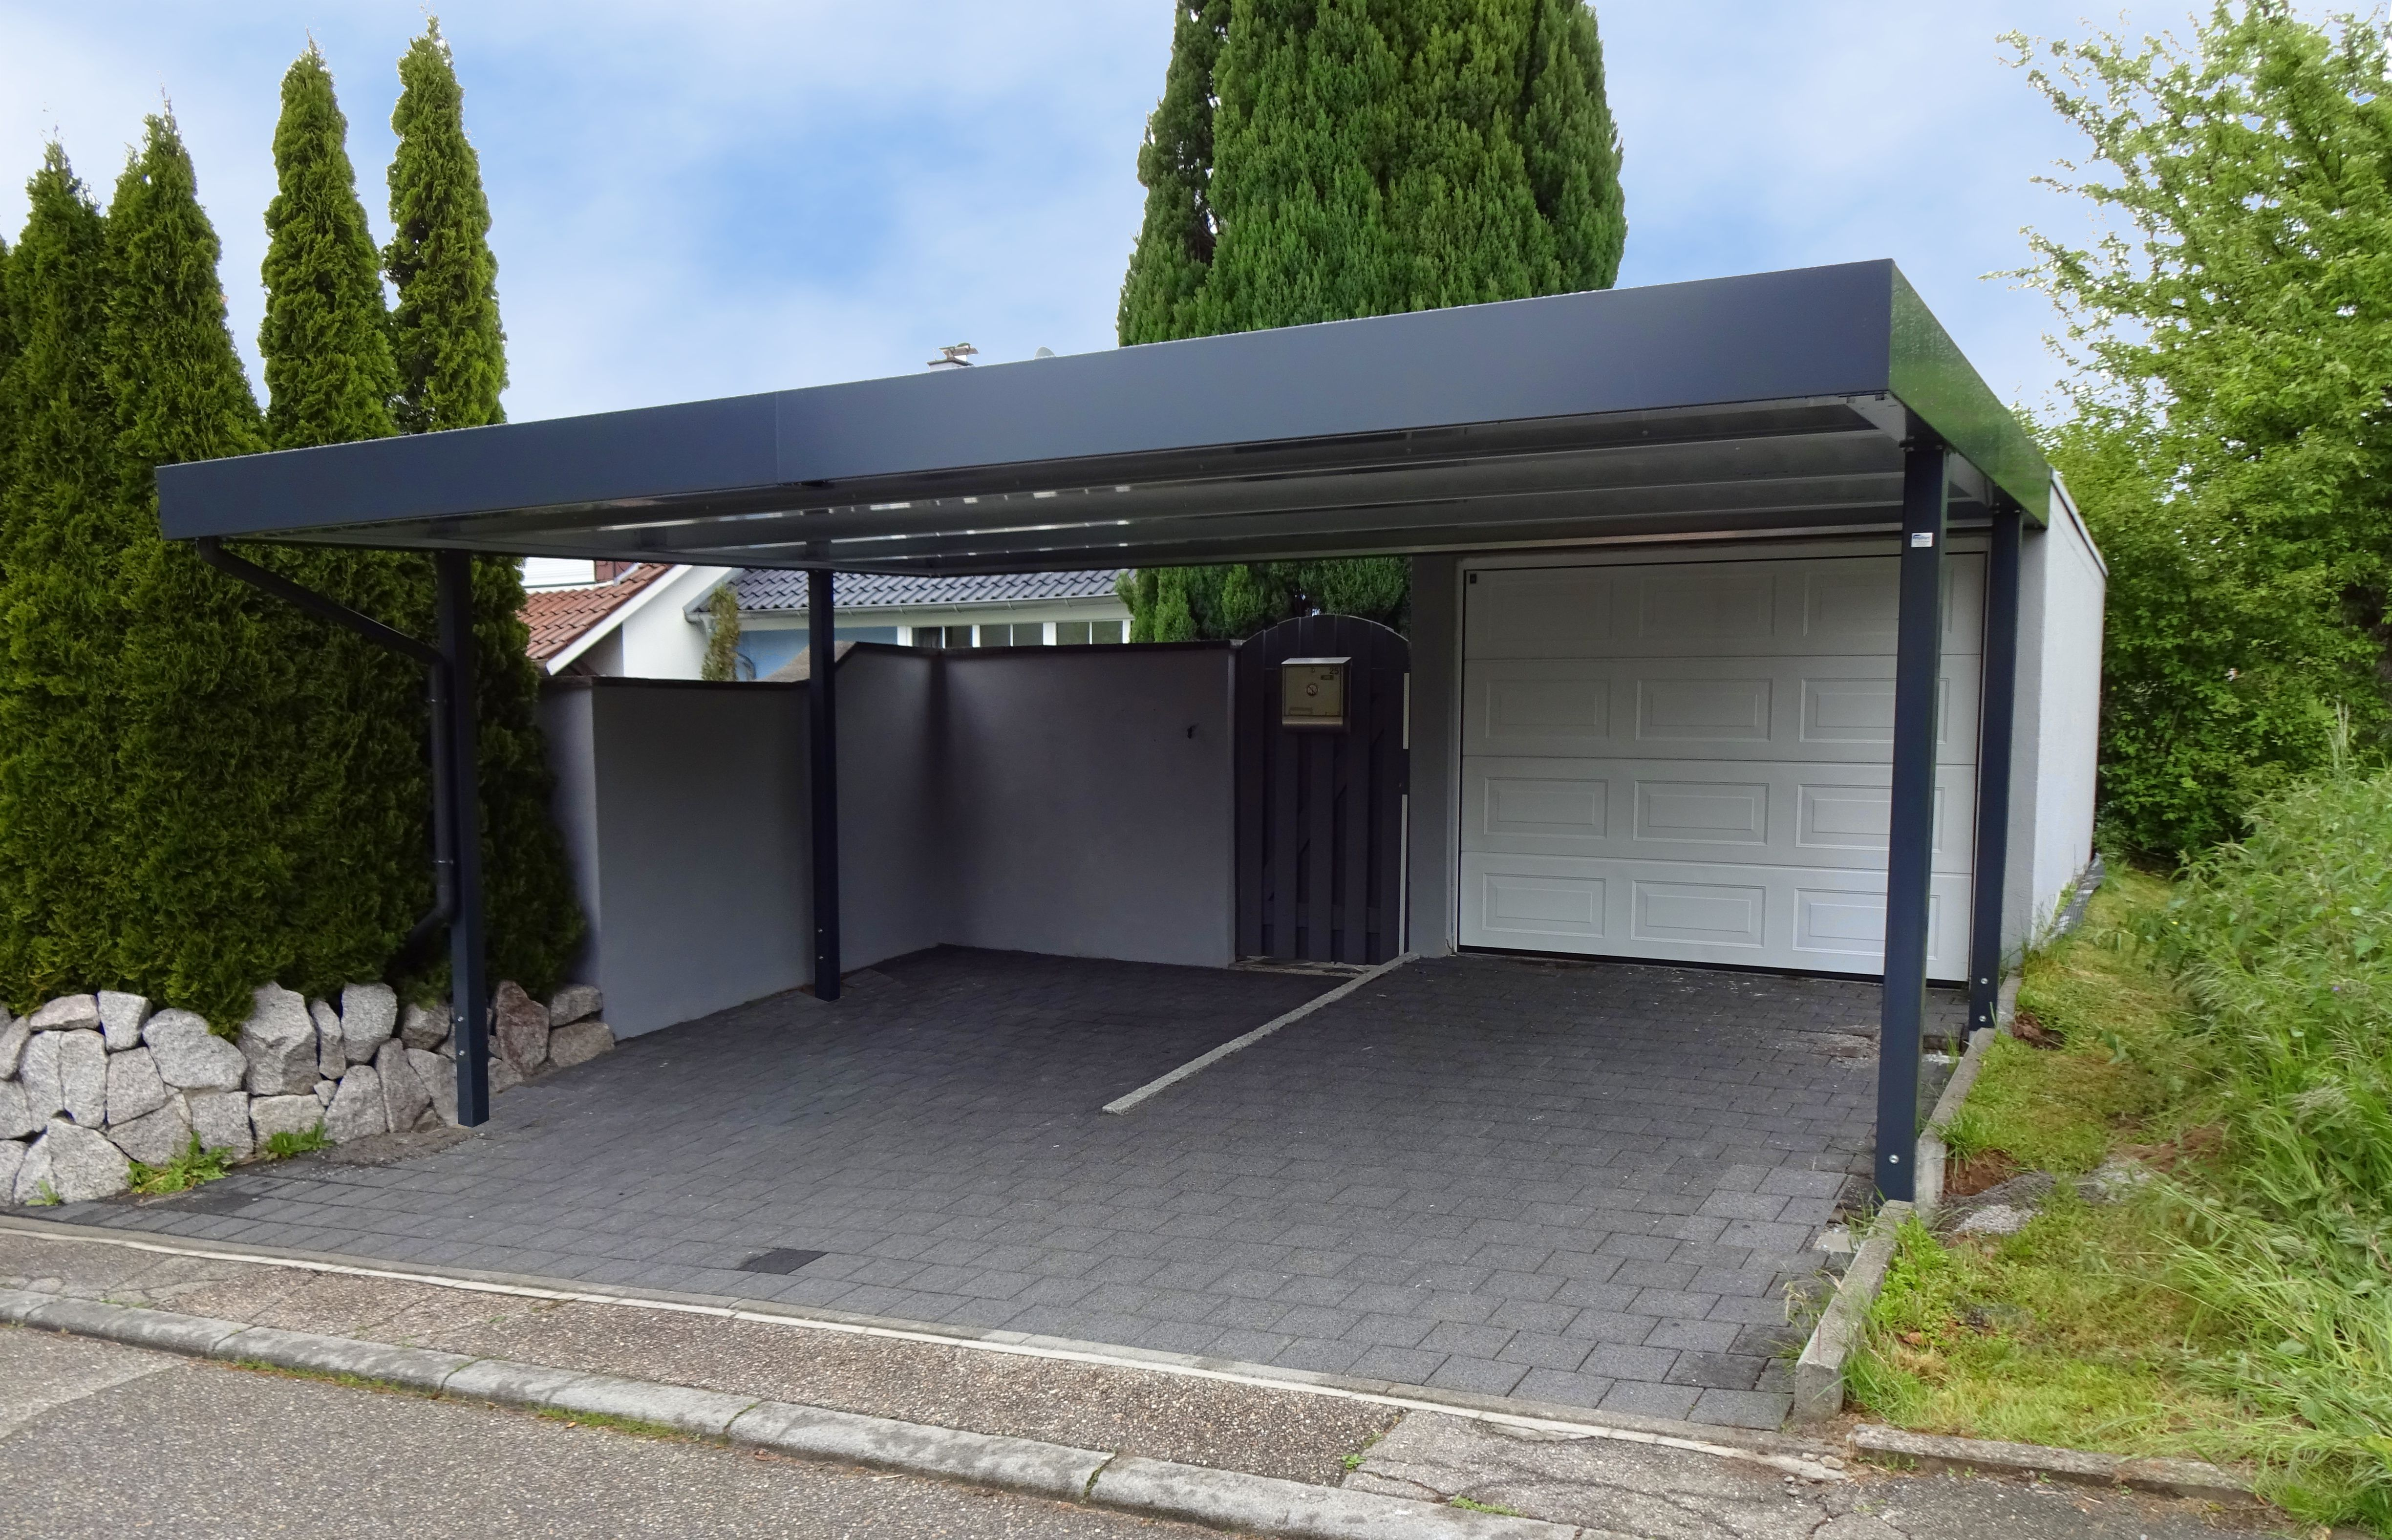 myport doppelcarport aus stahl in der farbe anthrazit carport carports doppelcarport. Black Bedroom Furniture Sets. Home Design Ideas